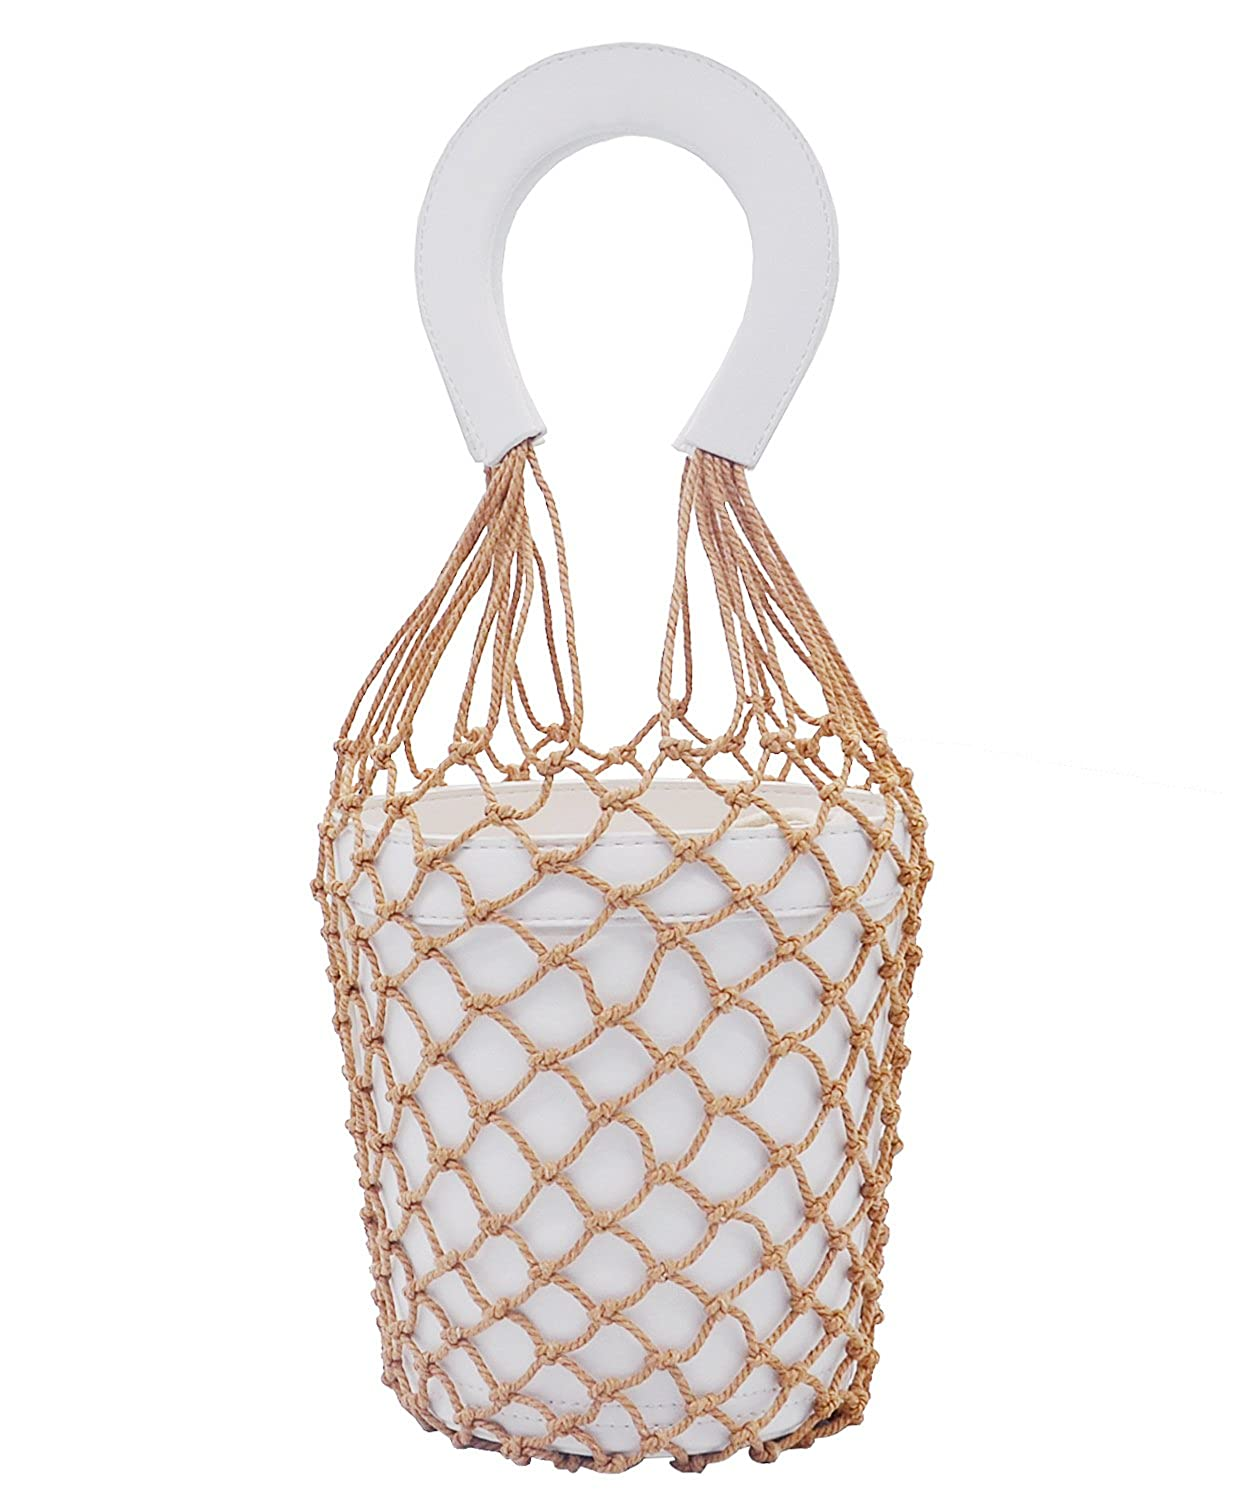 Net Bucket Bag